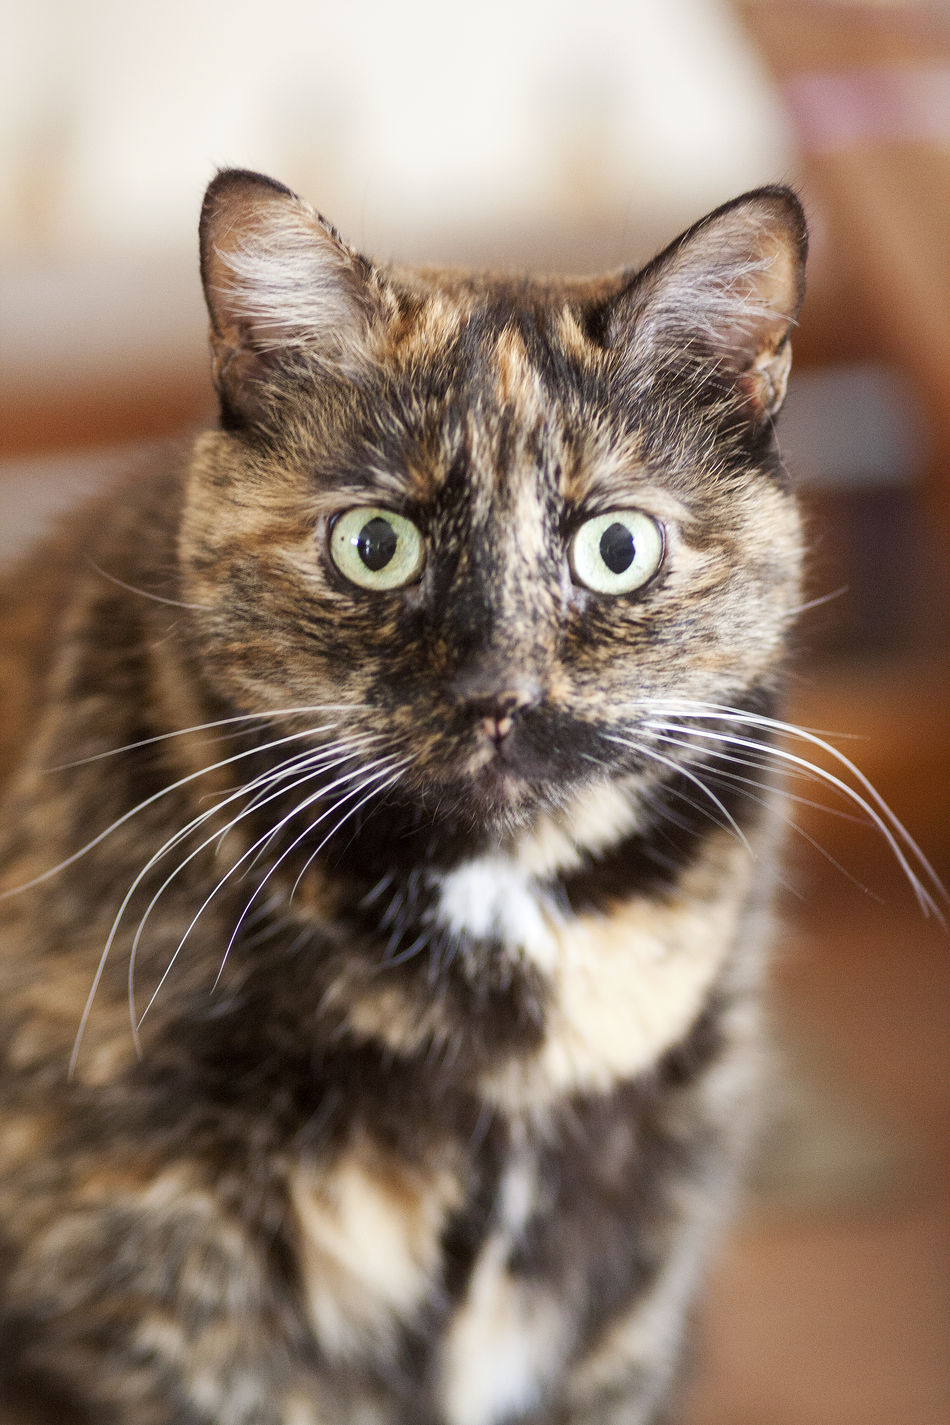 Animal Themes Close-up Day Domestic Animals Domestic Cat Feline Indoors  Looking At Camera Mammal No People One Animal Pets Portrait Whisker